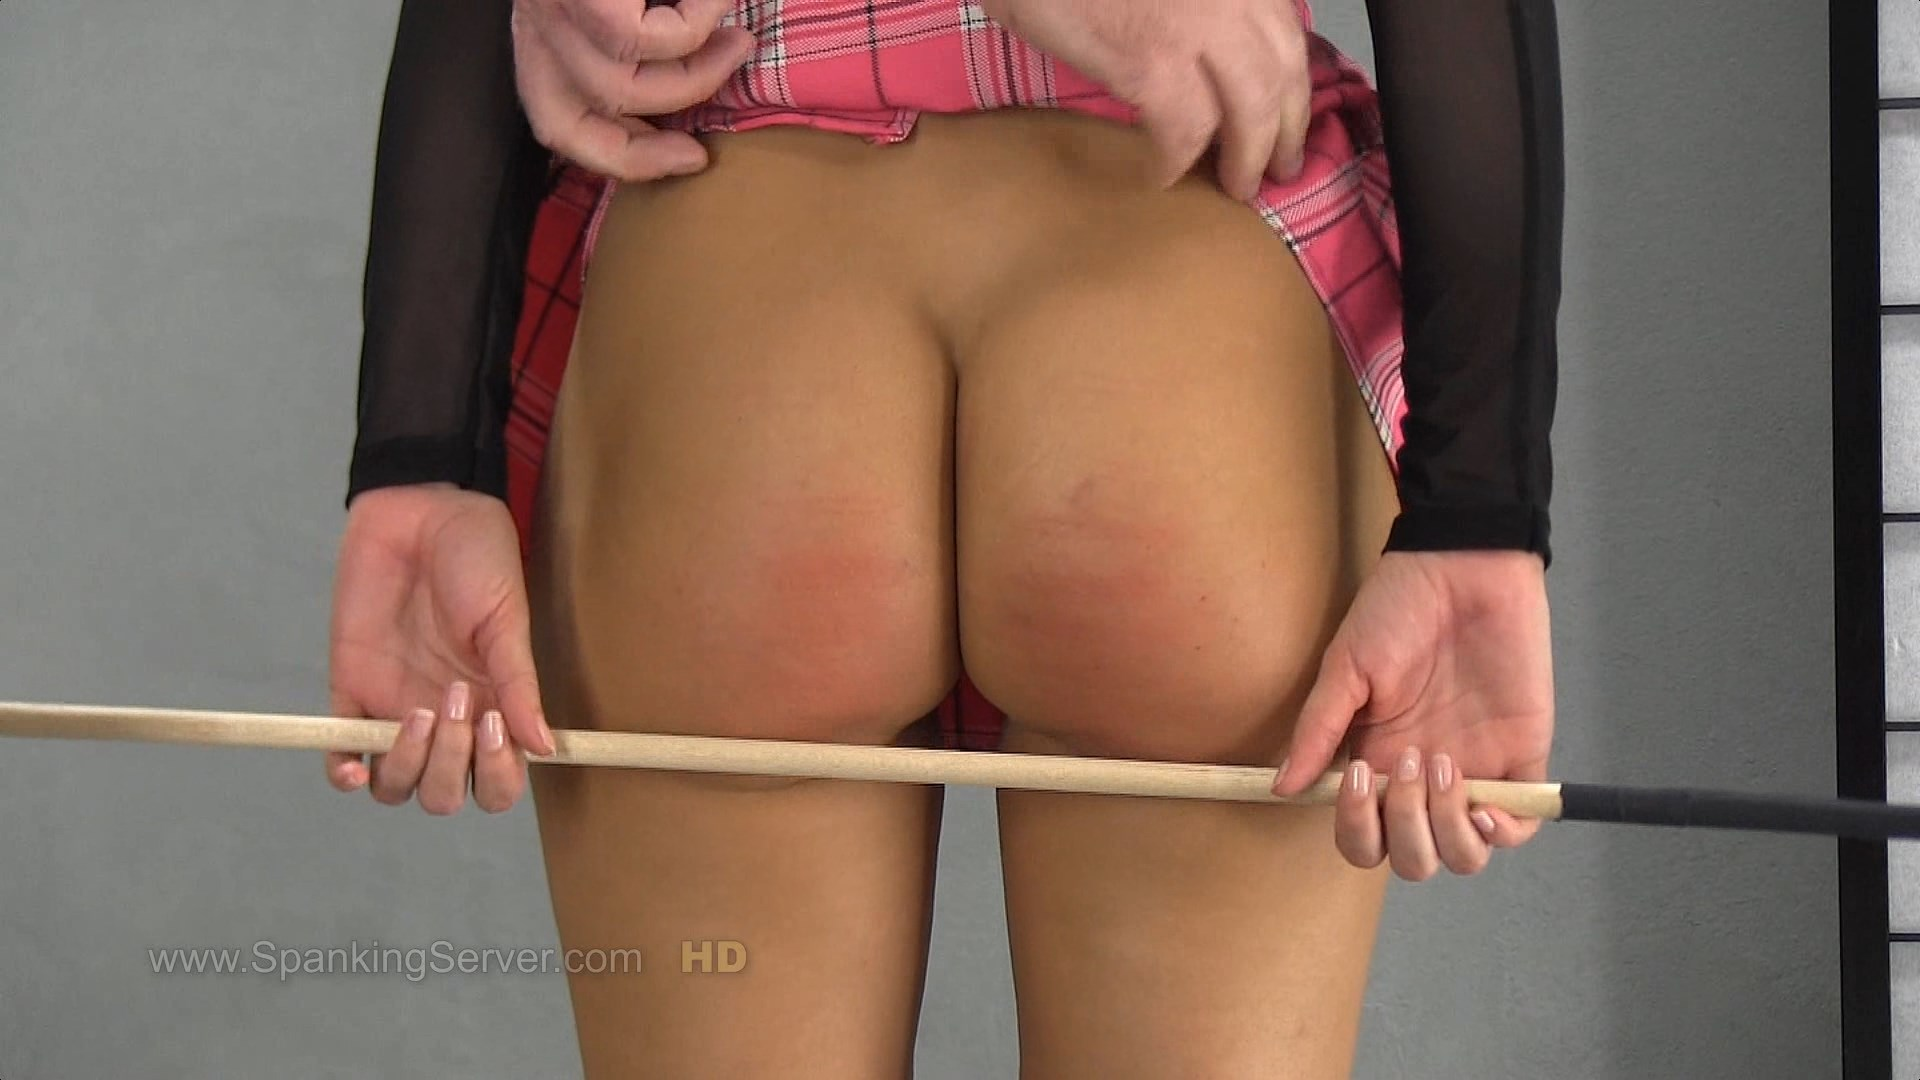 Spanking Server – MP4/SD – Lola – Week 23